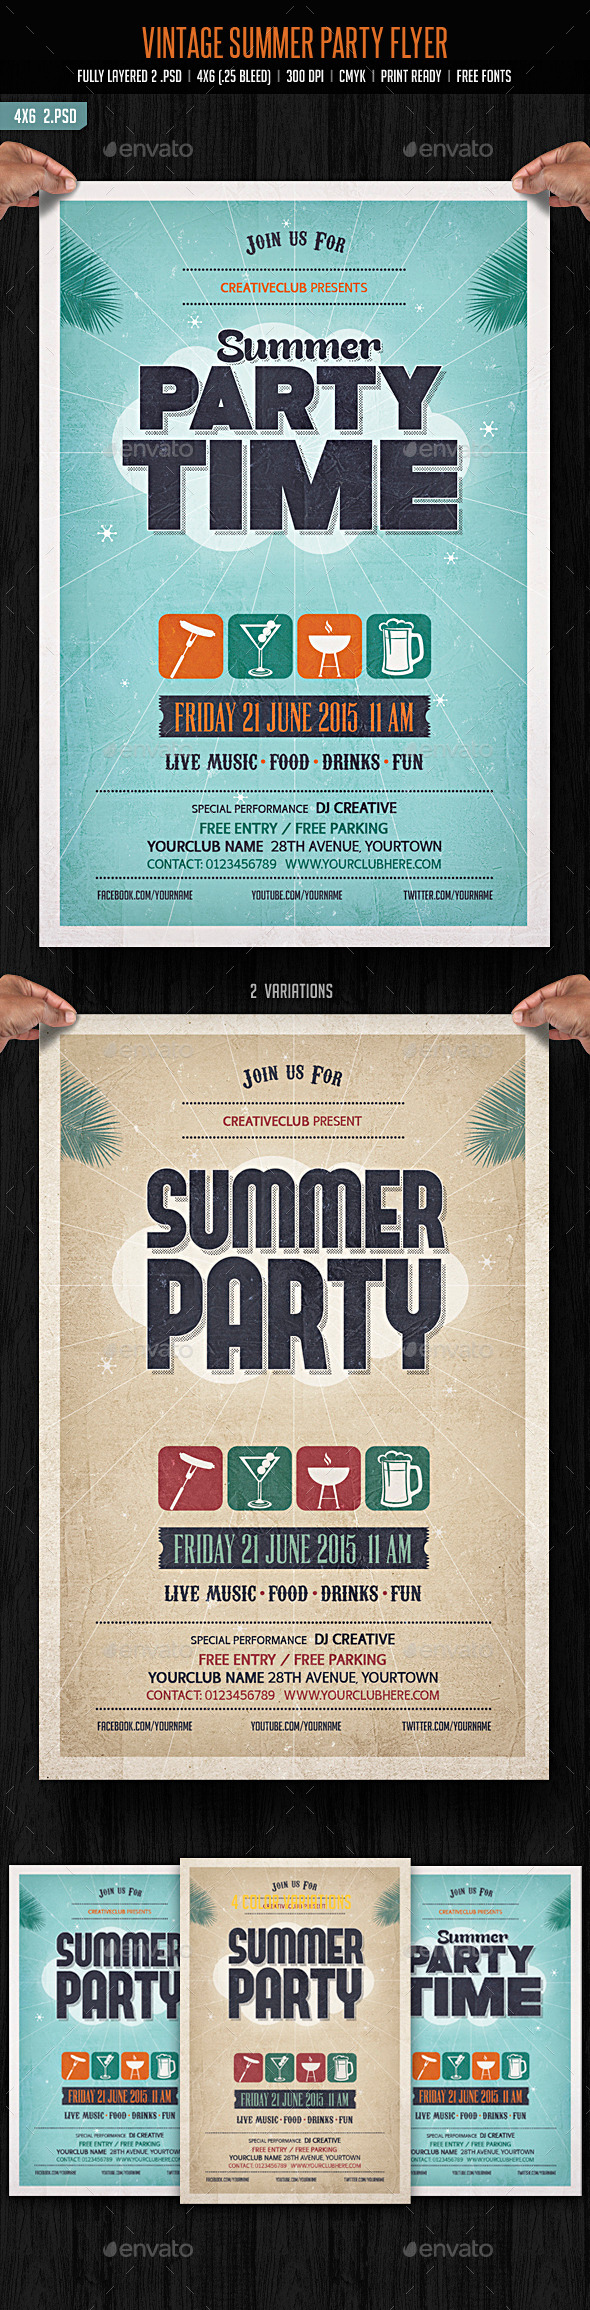 GraphicRiver Vintage Summer Party Flyer 11027568